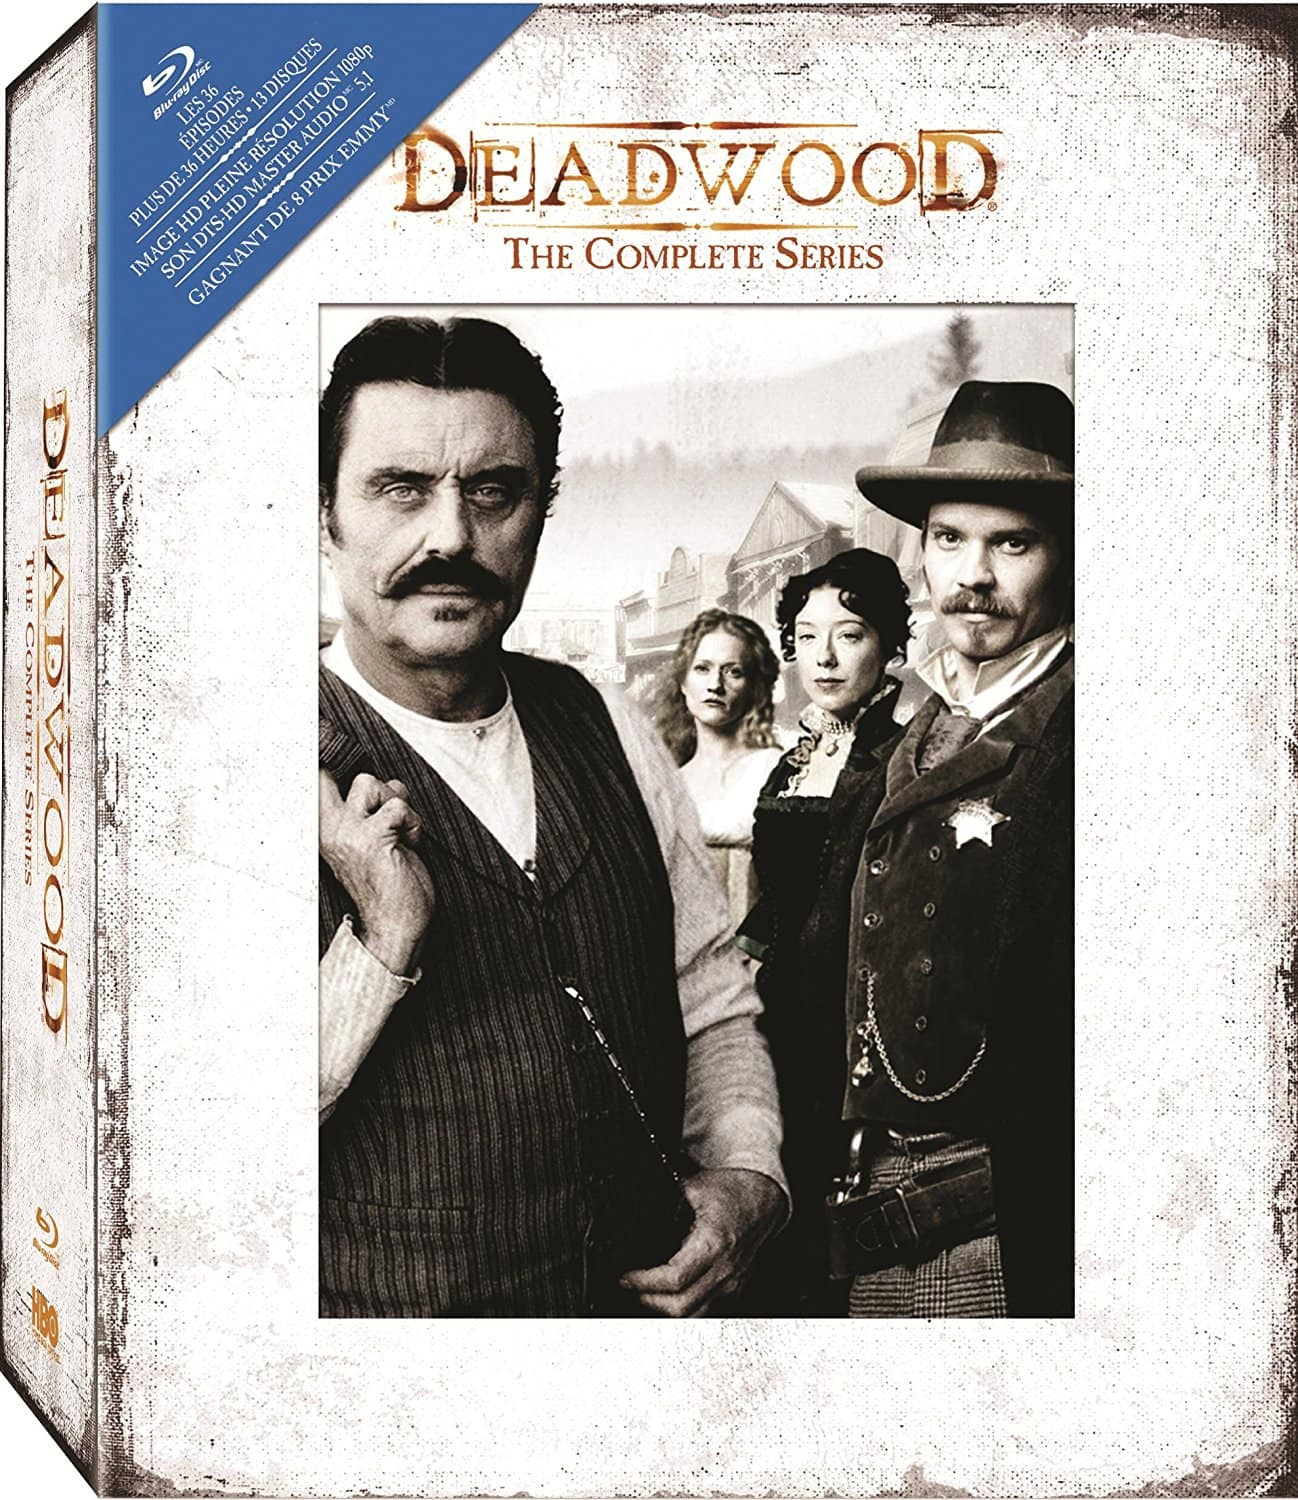 Deadwood: Complete Series (Blu-ray + Digital HD) $25.21 + Free Shipping